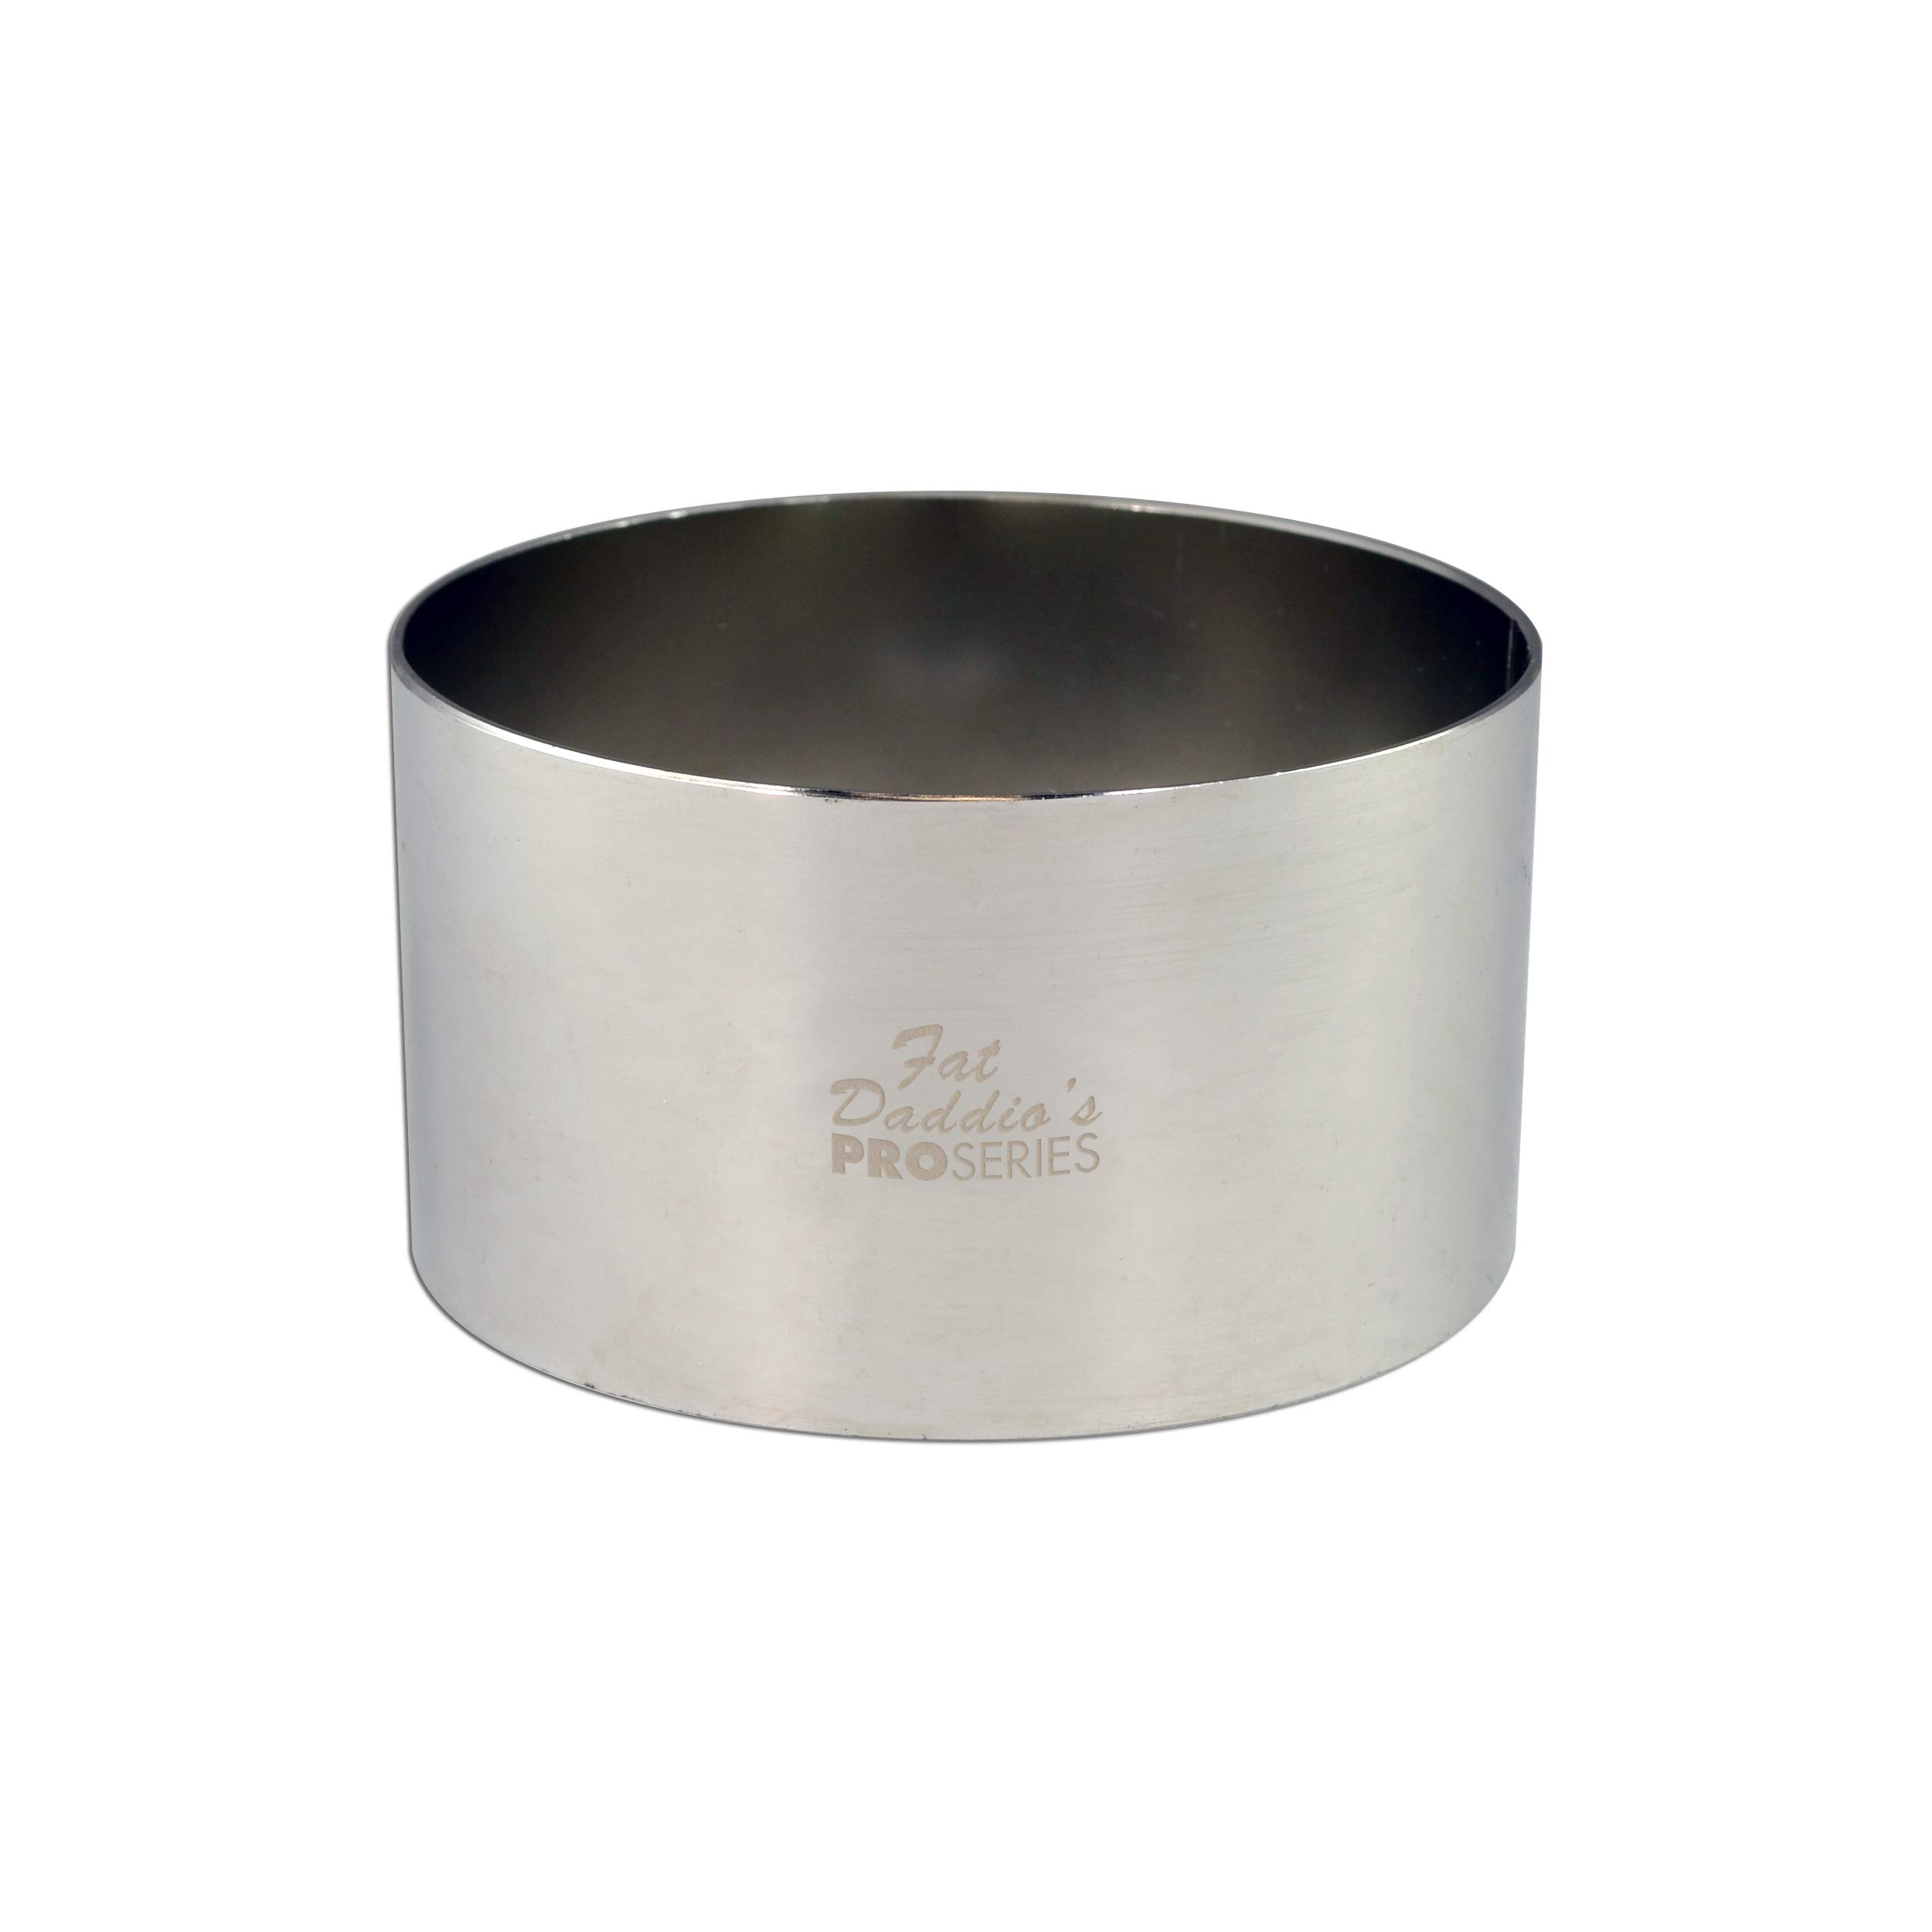 Fat Daddio's Stainless Steel Round Cake & Pastry Ring, 3.5 x 1.75 Inch